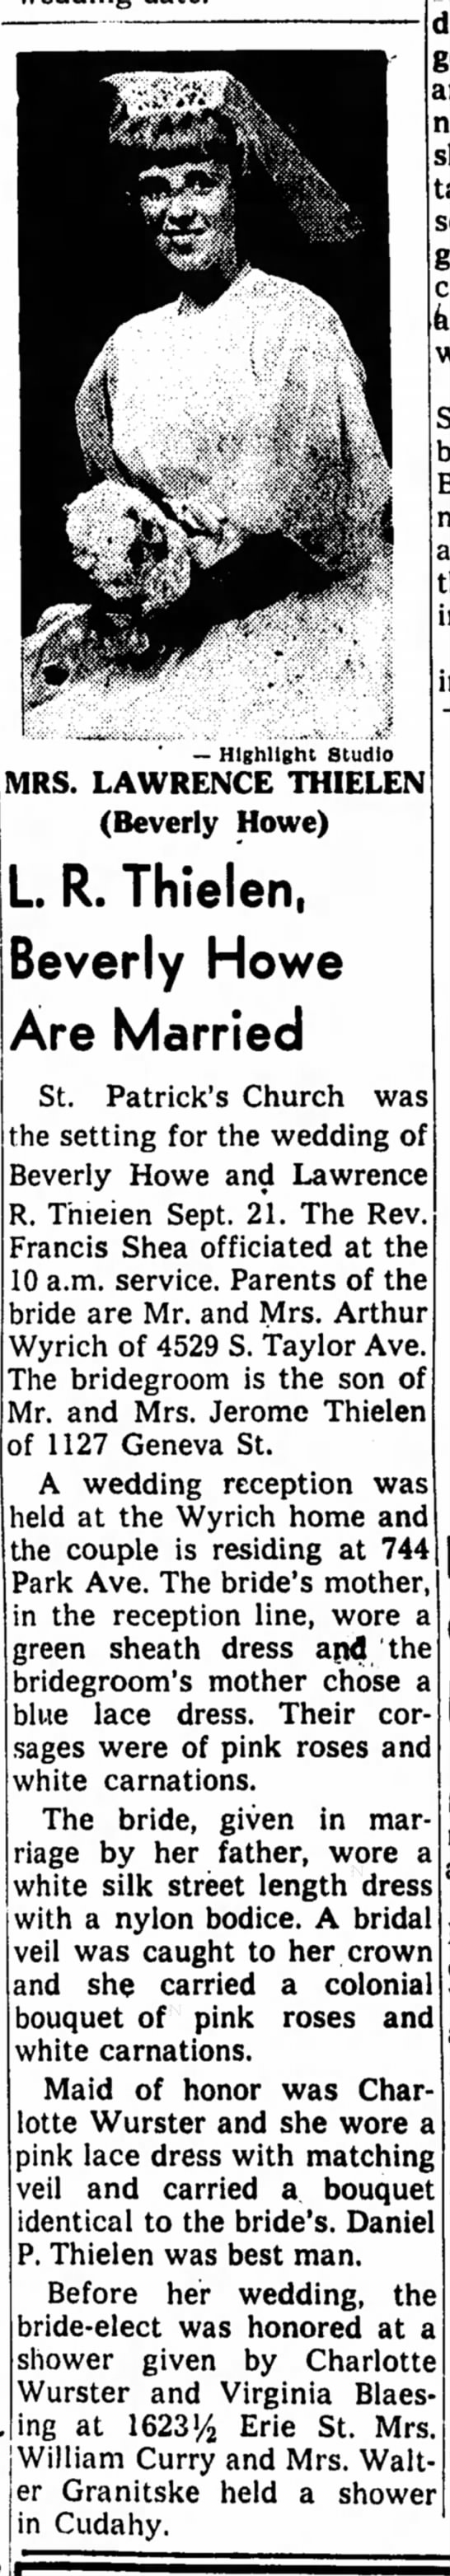 Larry Thielen (Brother) and Bev Howe - Marriage report September 1963 -